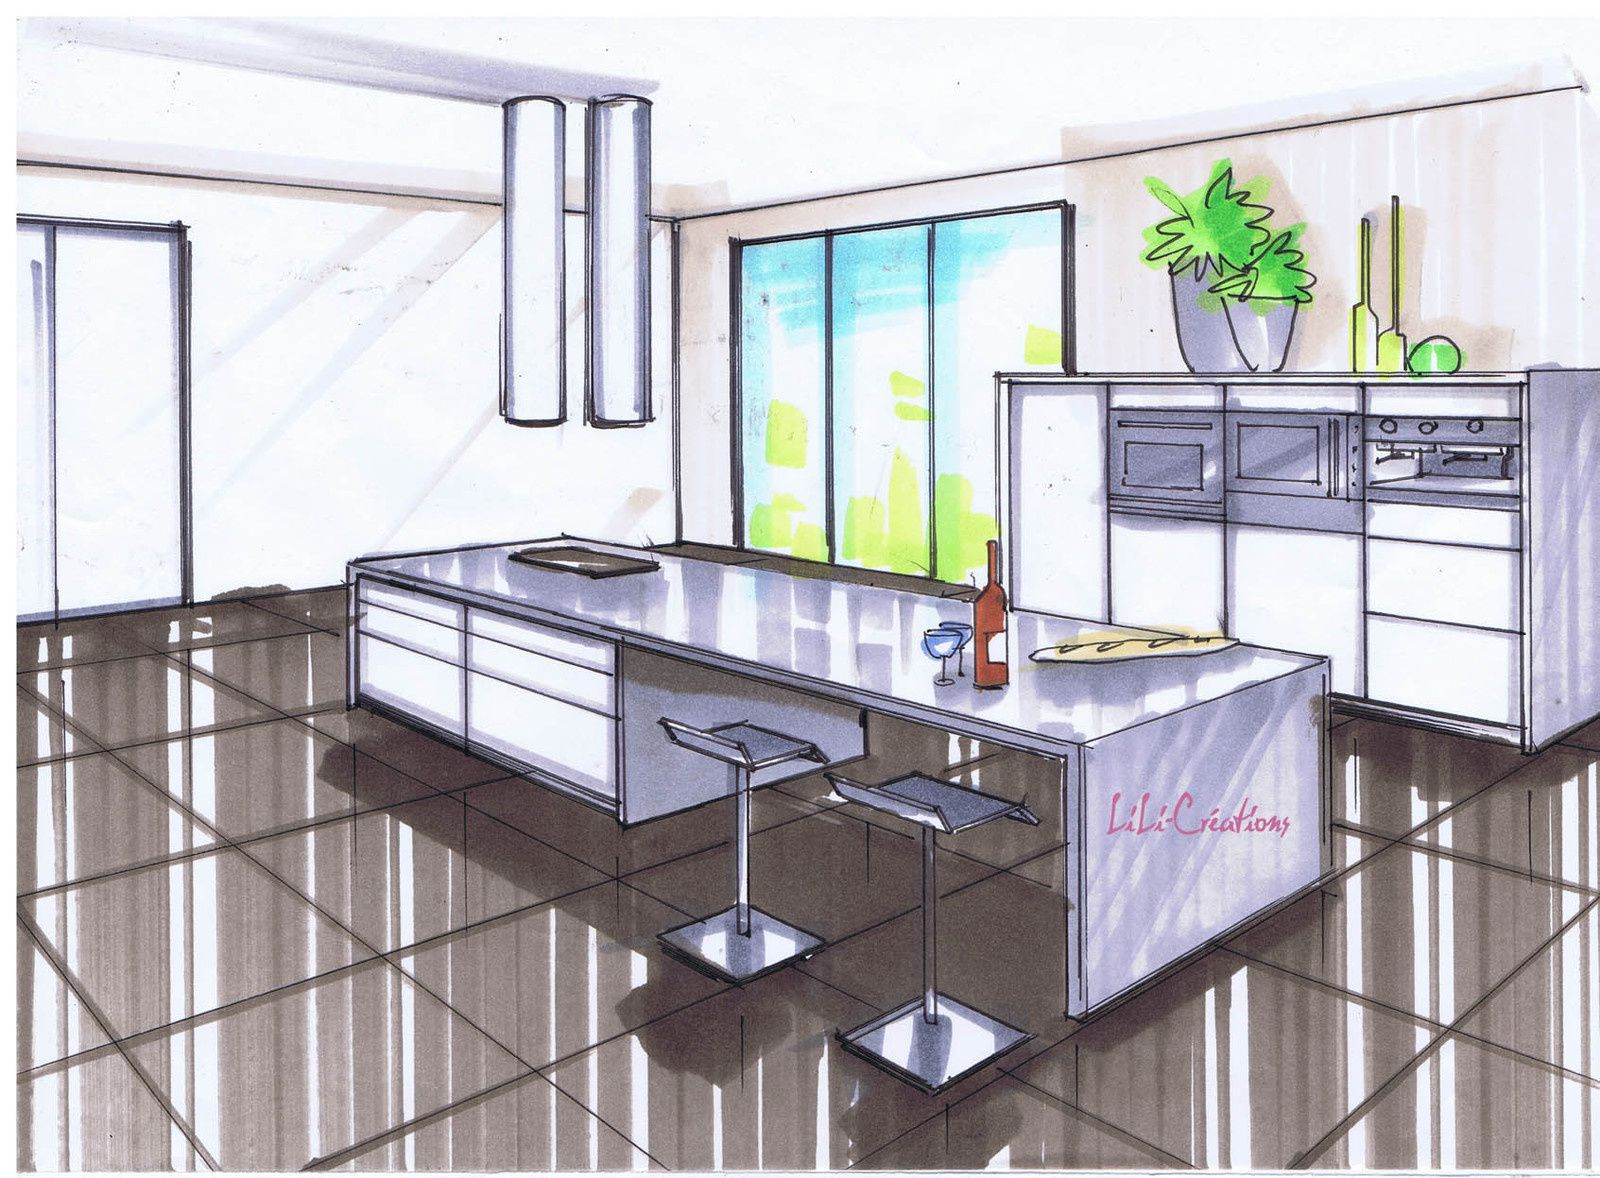 Le blog de elise fossoux d coration architecture d for Deco cuisine dessin